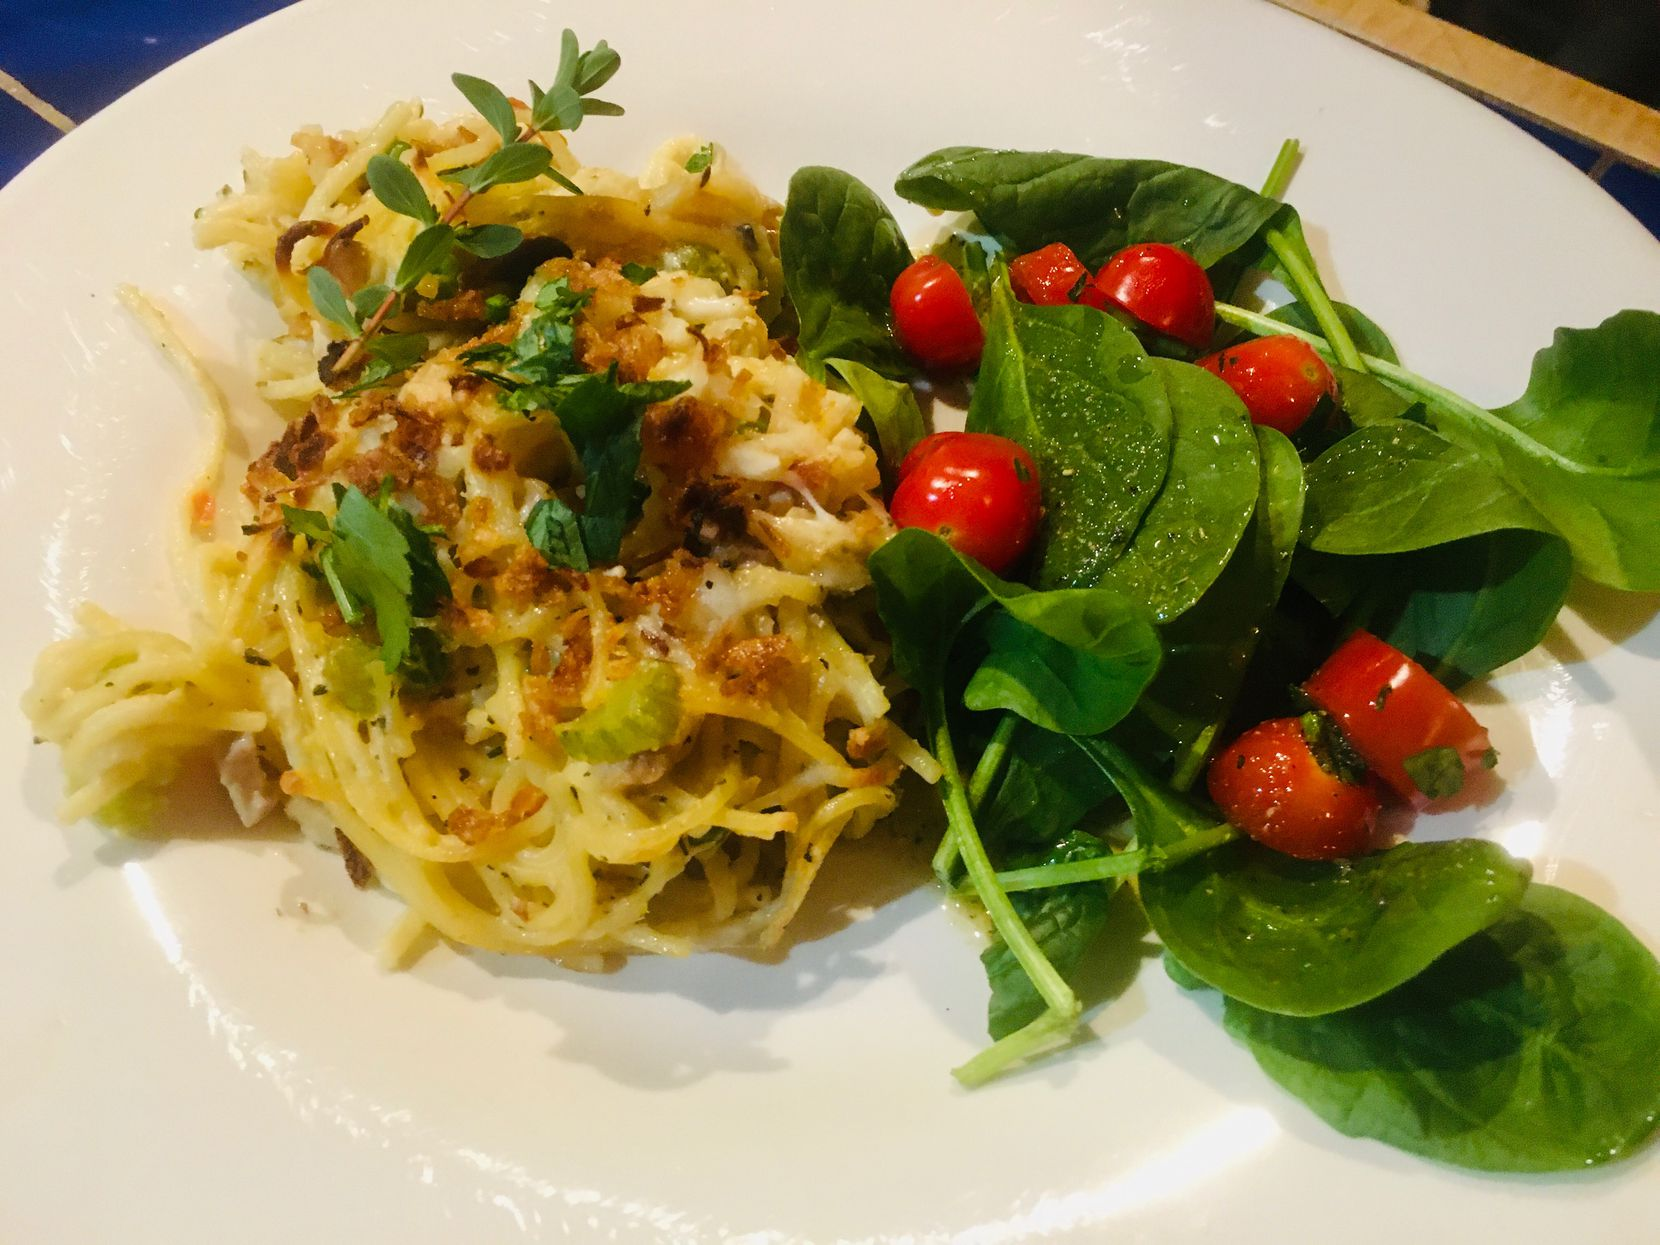 Chicken Spaghetti is June Naylor's update to a 1928 recipe from her dad's mother's 'The Woman's Club of Fort Worth Cook Book.'